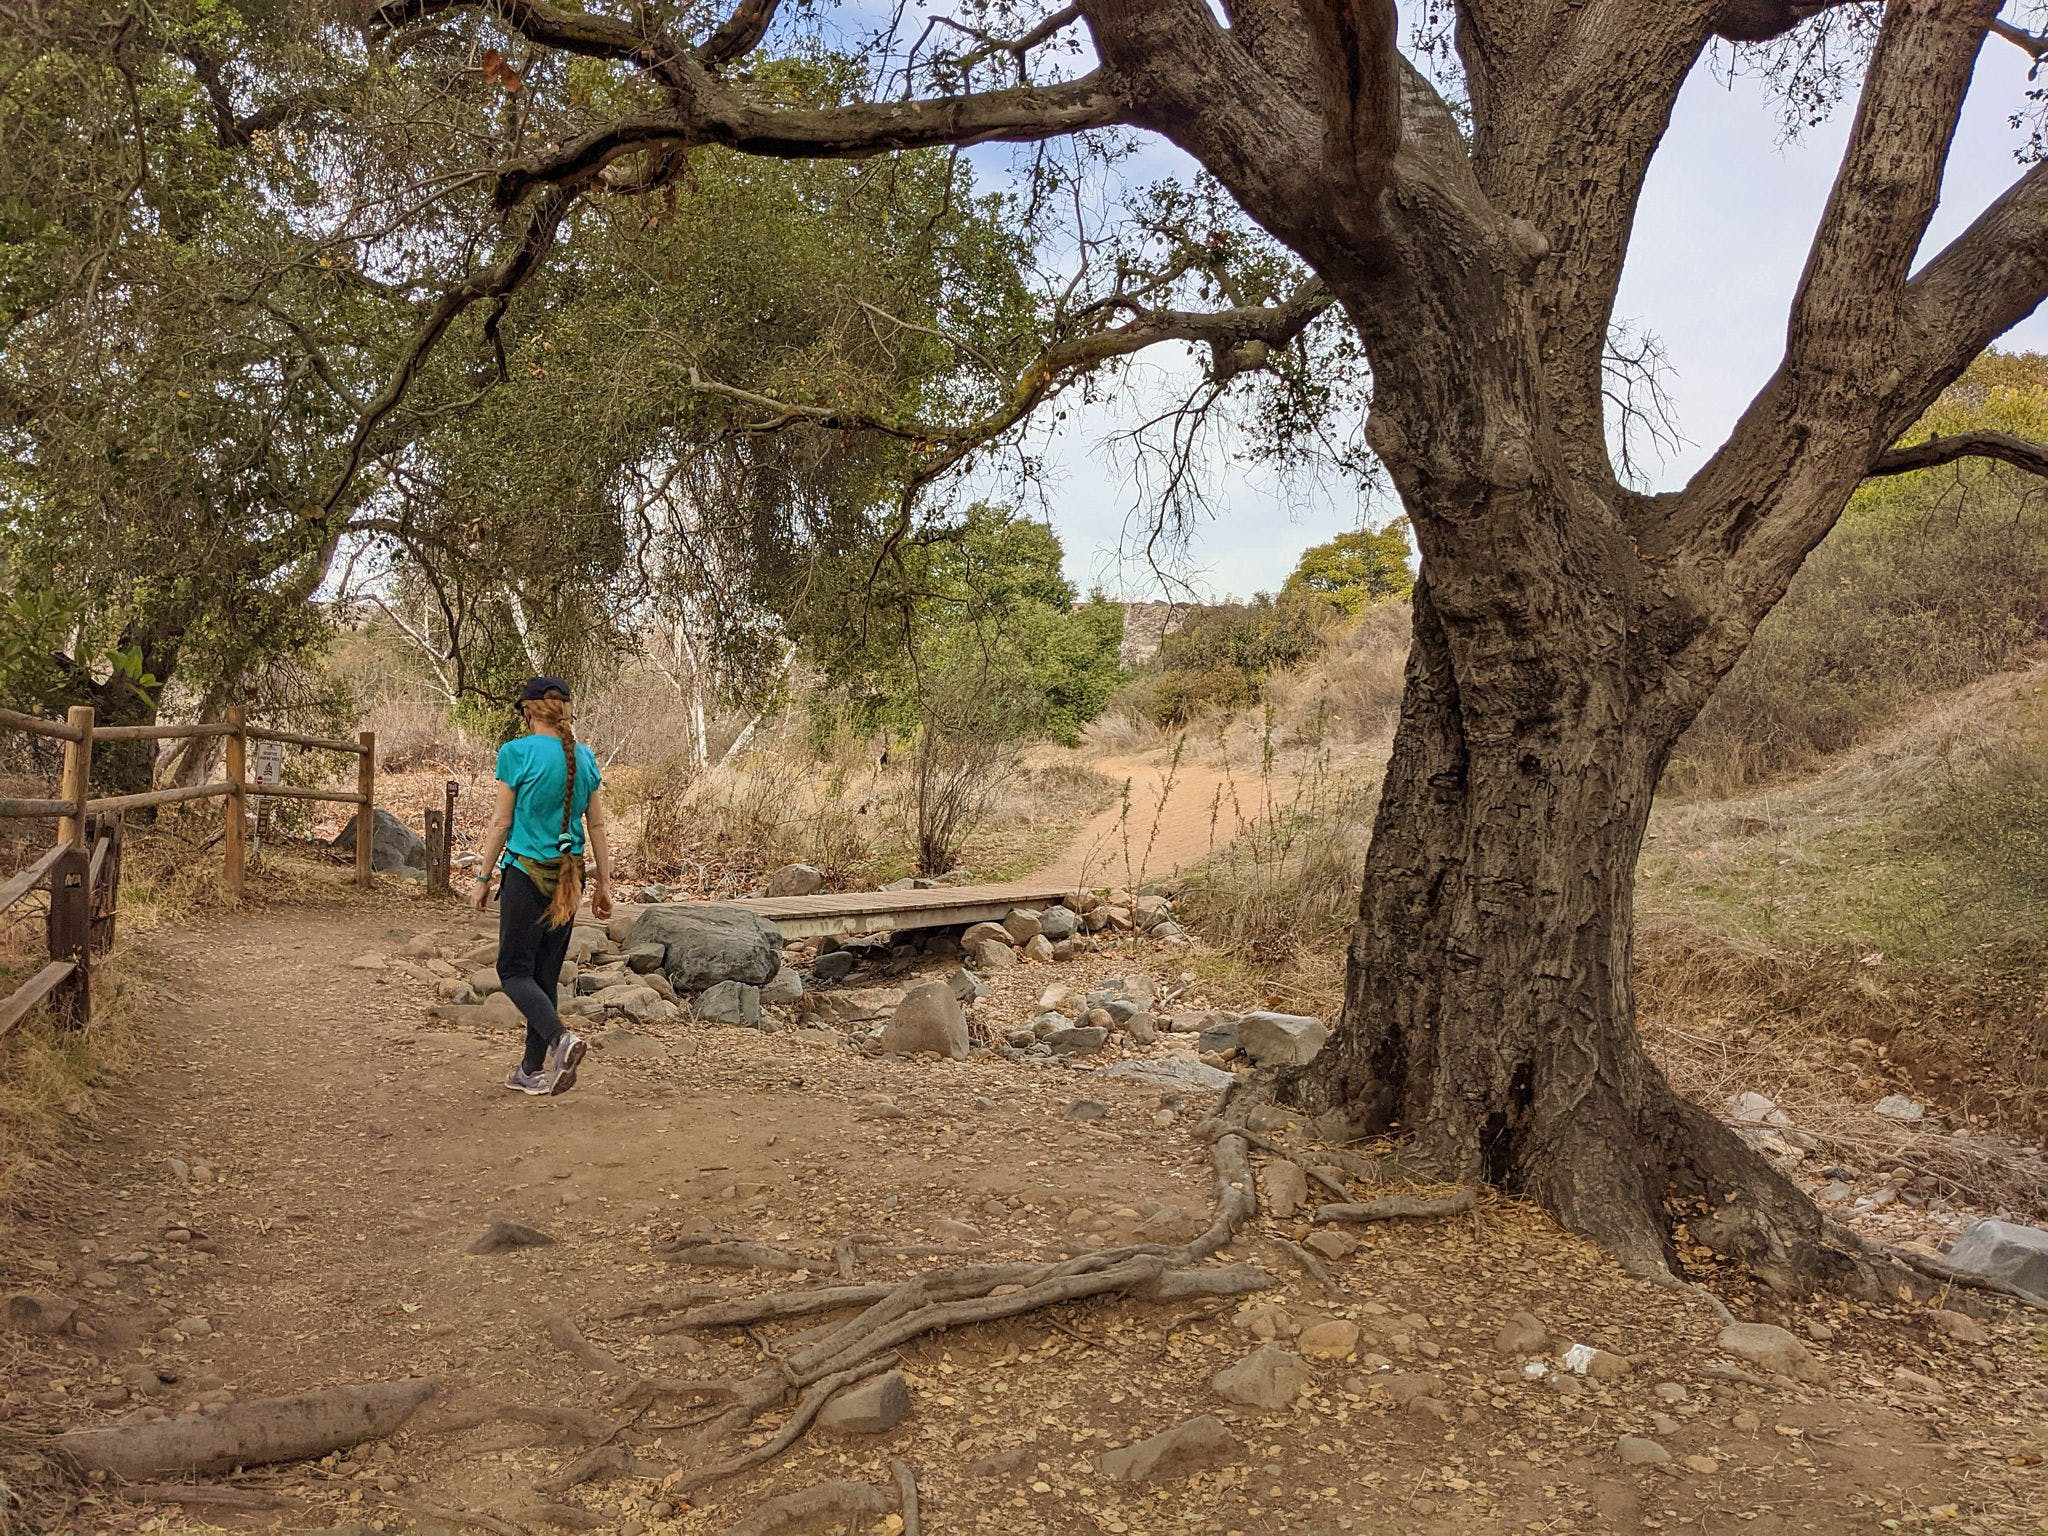 Woman walking past a large oak tree at Mission Trails Regional Park in San Diego